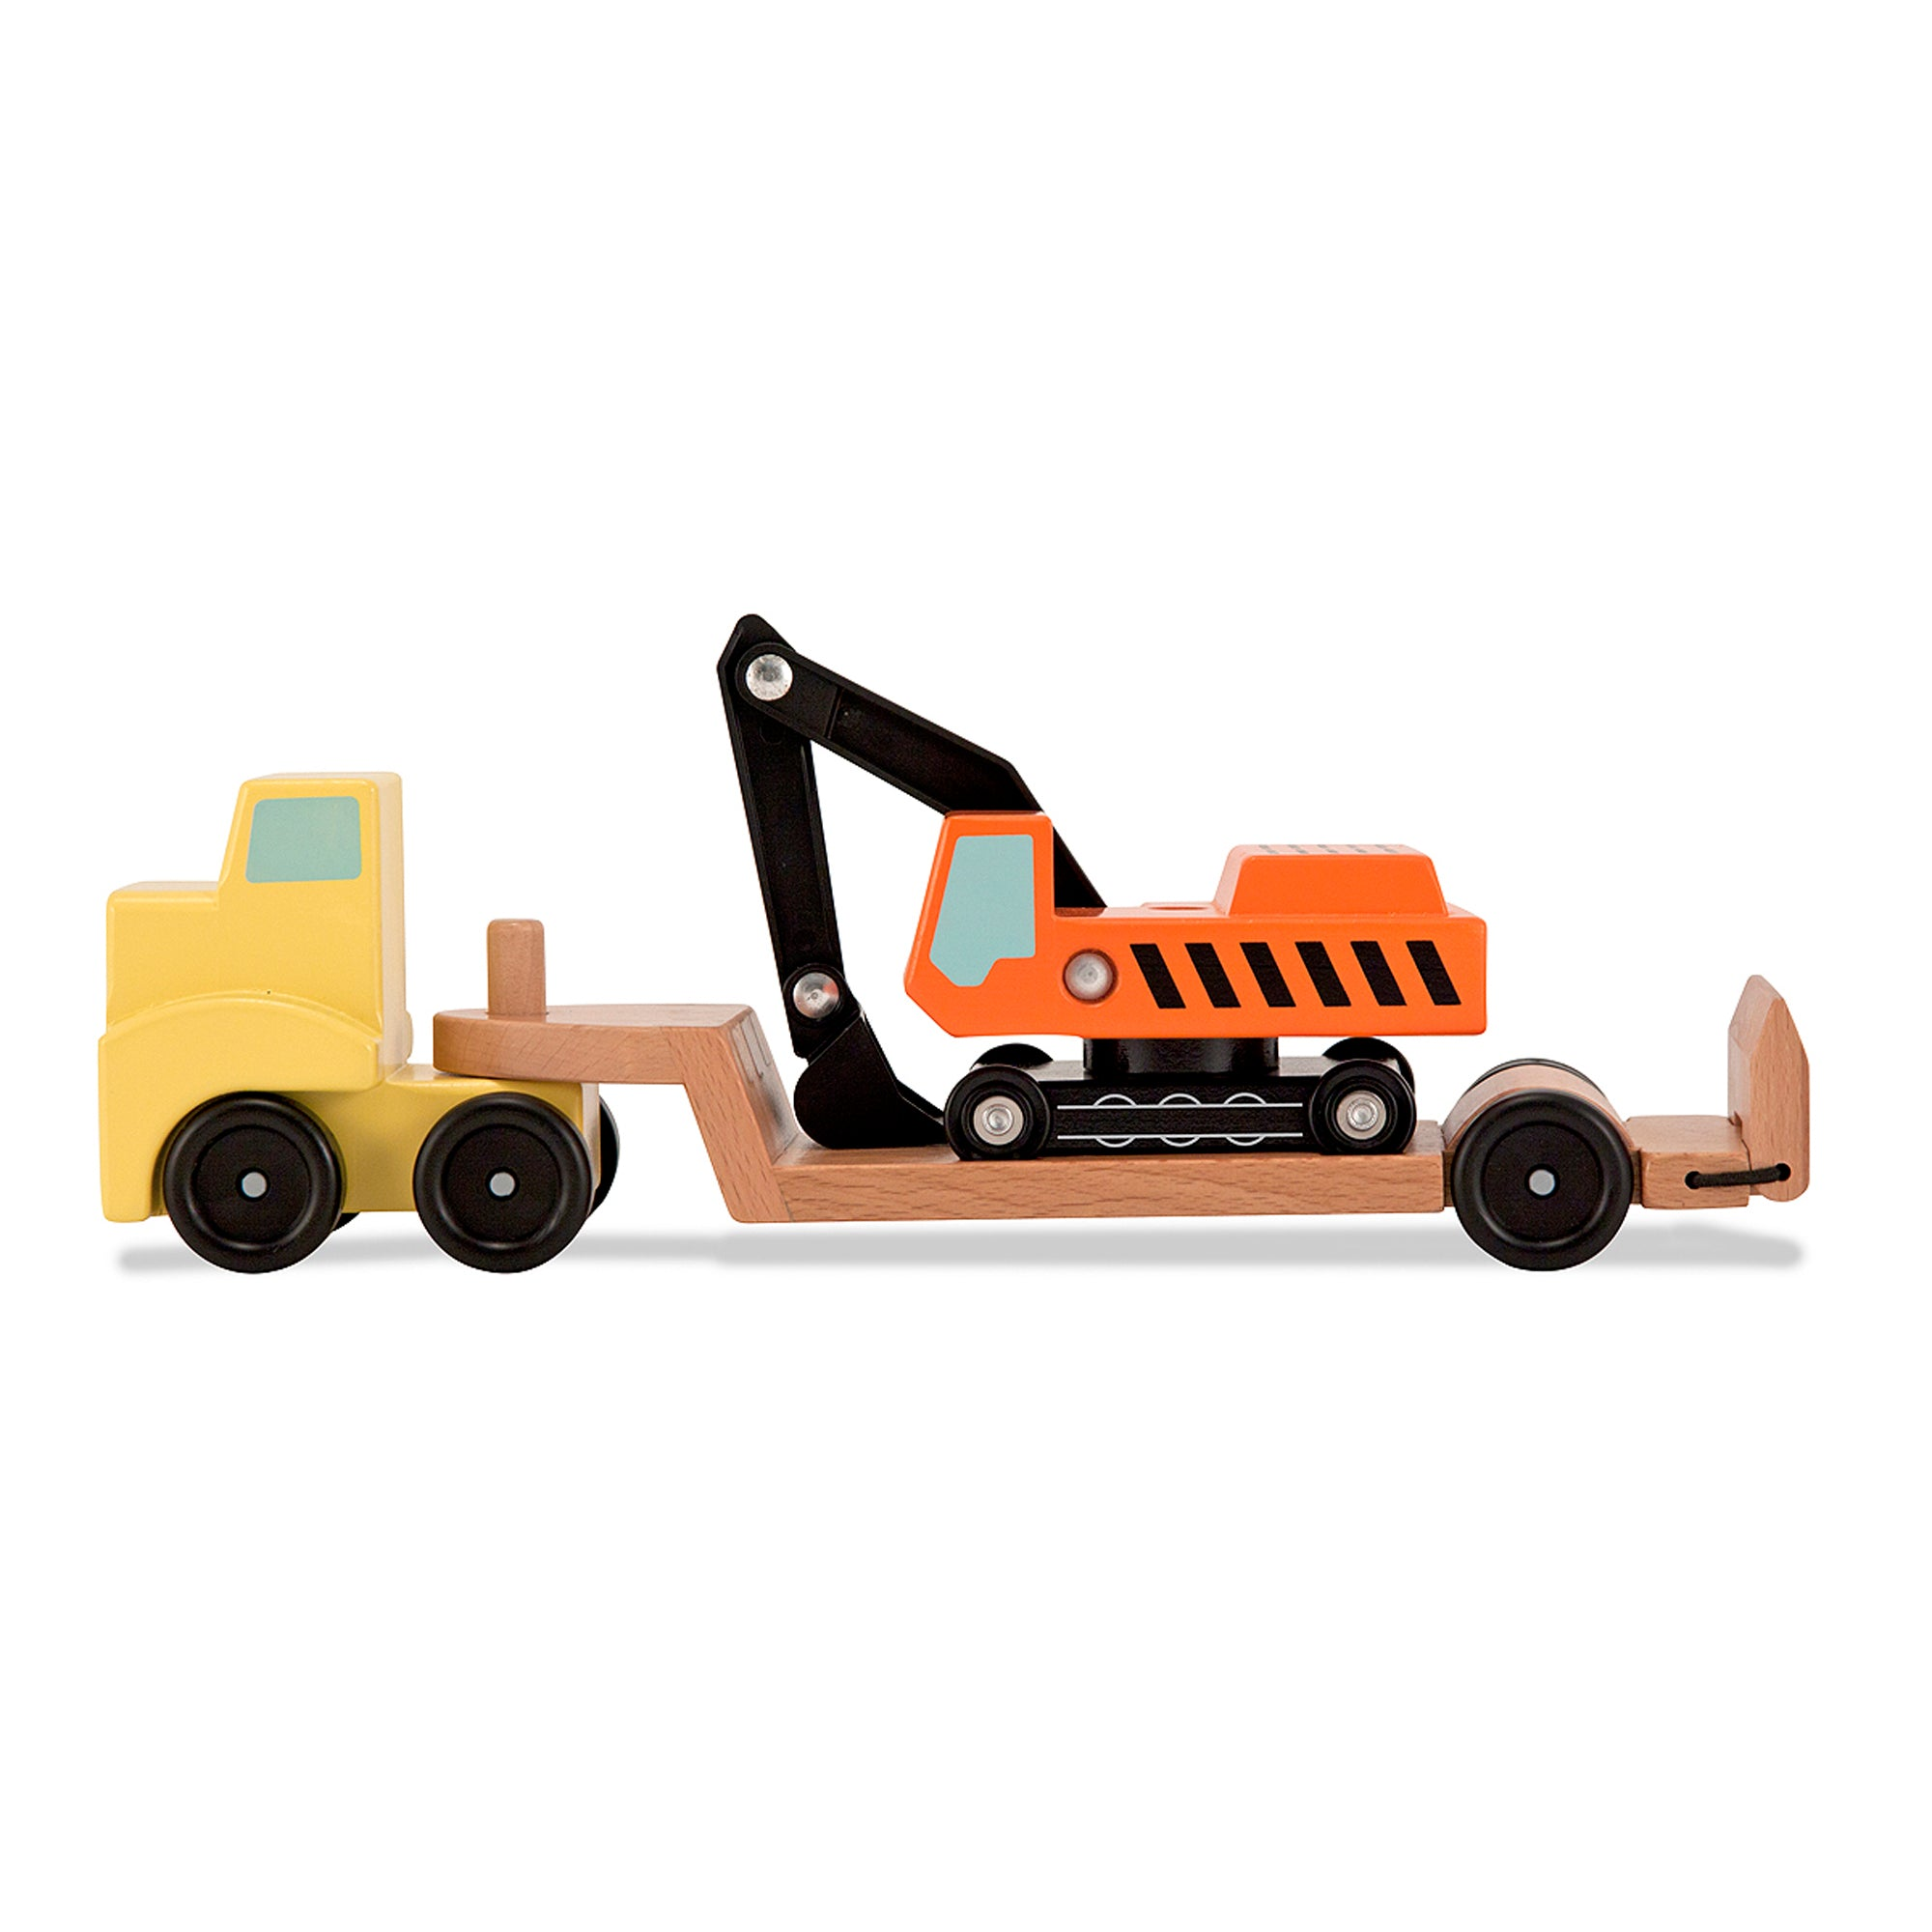 Trailer & Excavator Wooden Vehicle